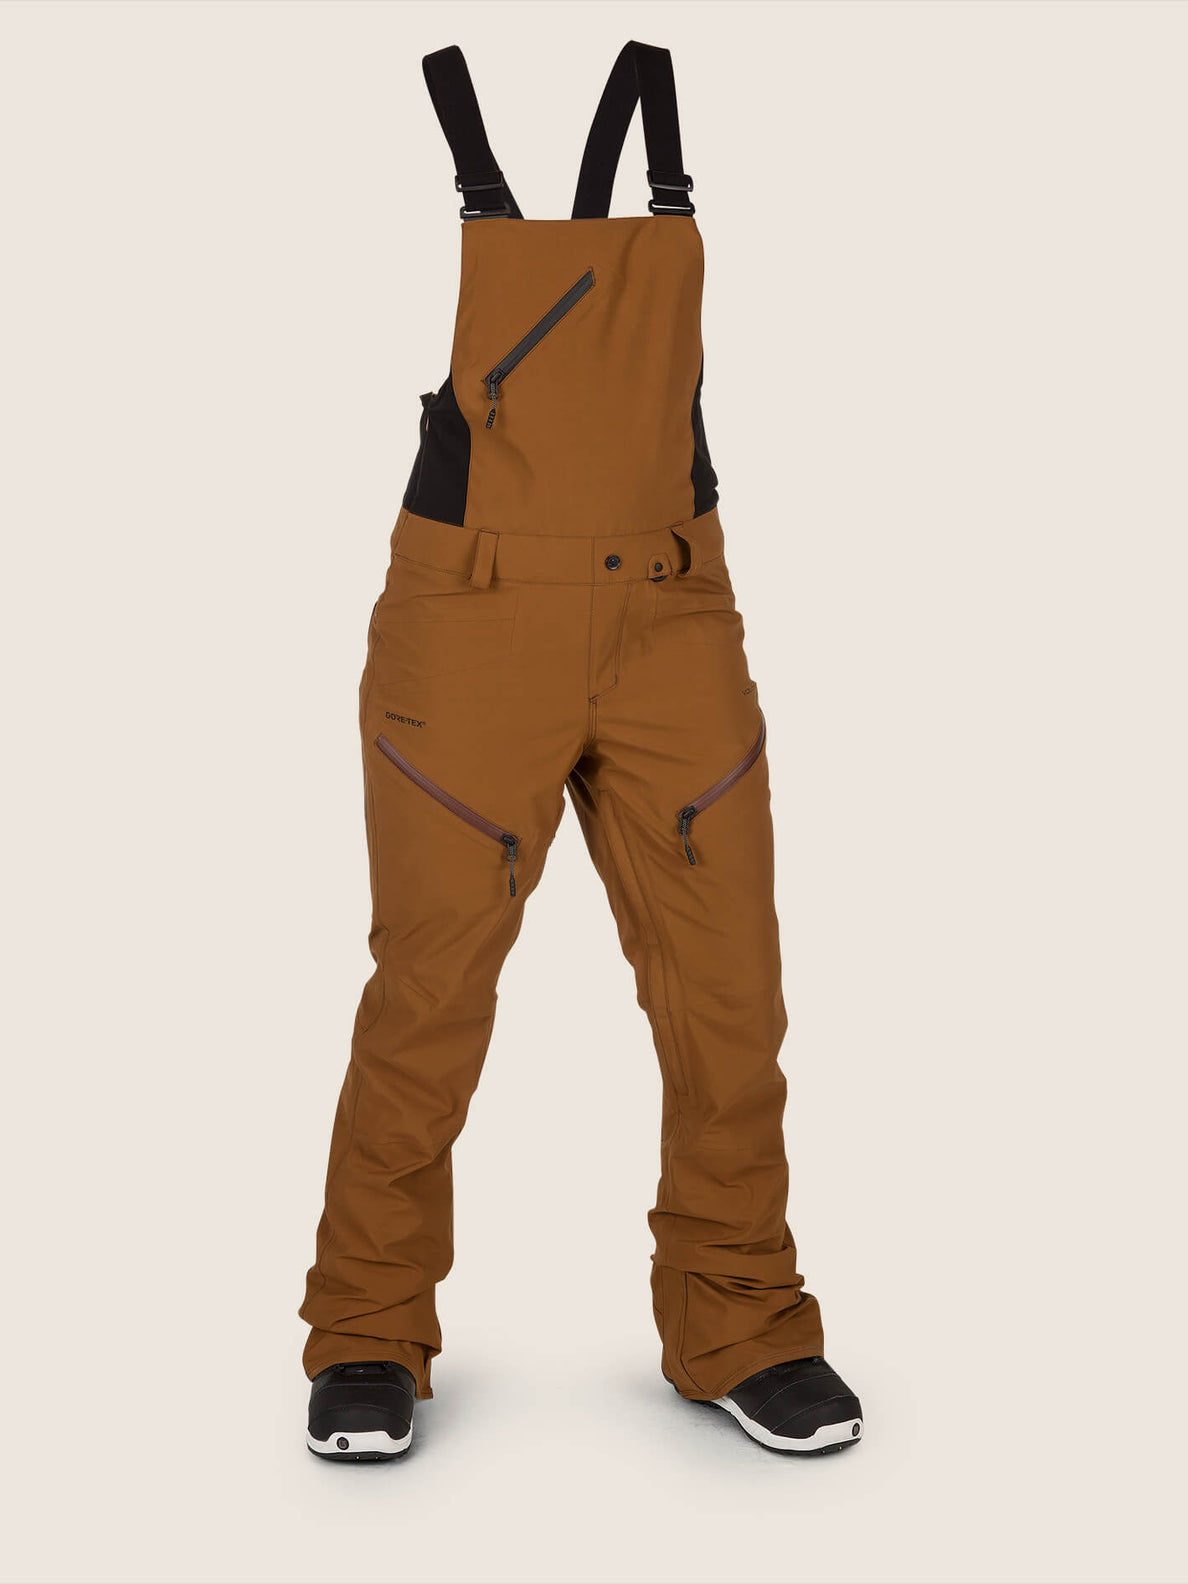 Elm Gore-tex Bib Overall In Copper, Front View